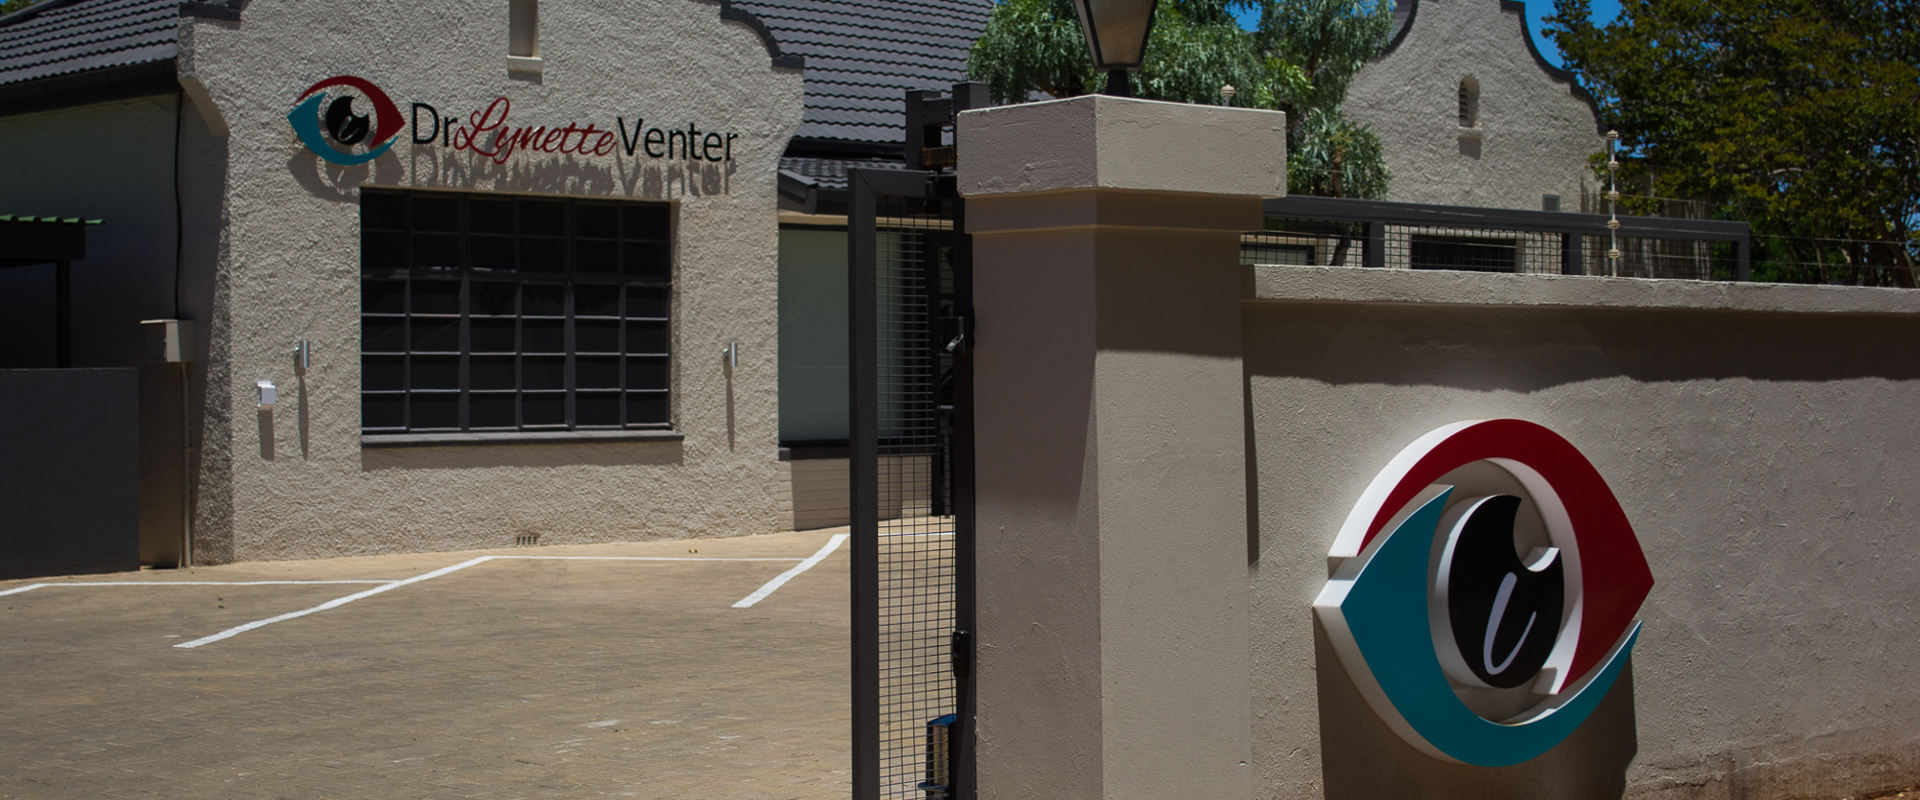 Welcome to Dr Lynette Venter's Practice